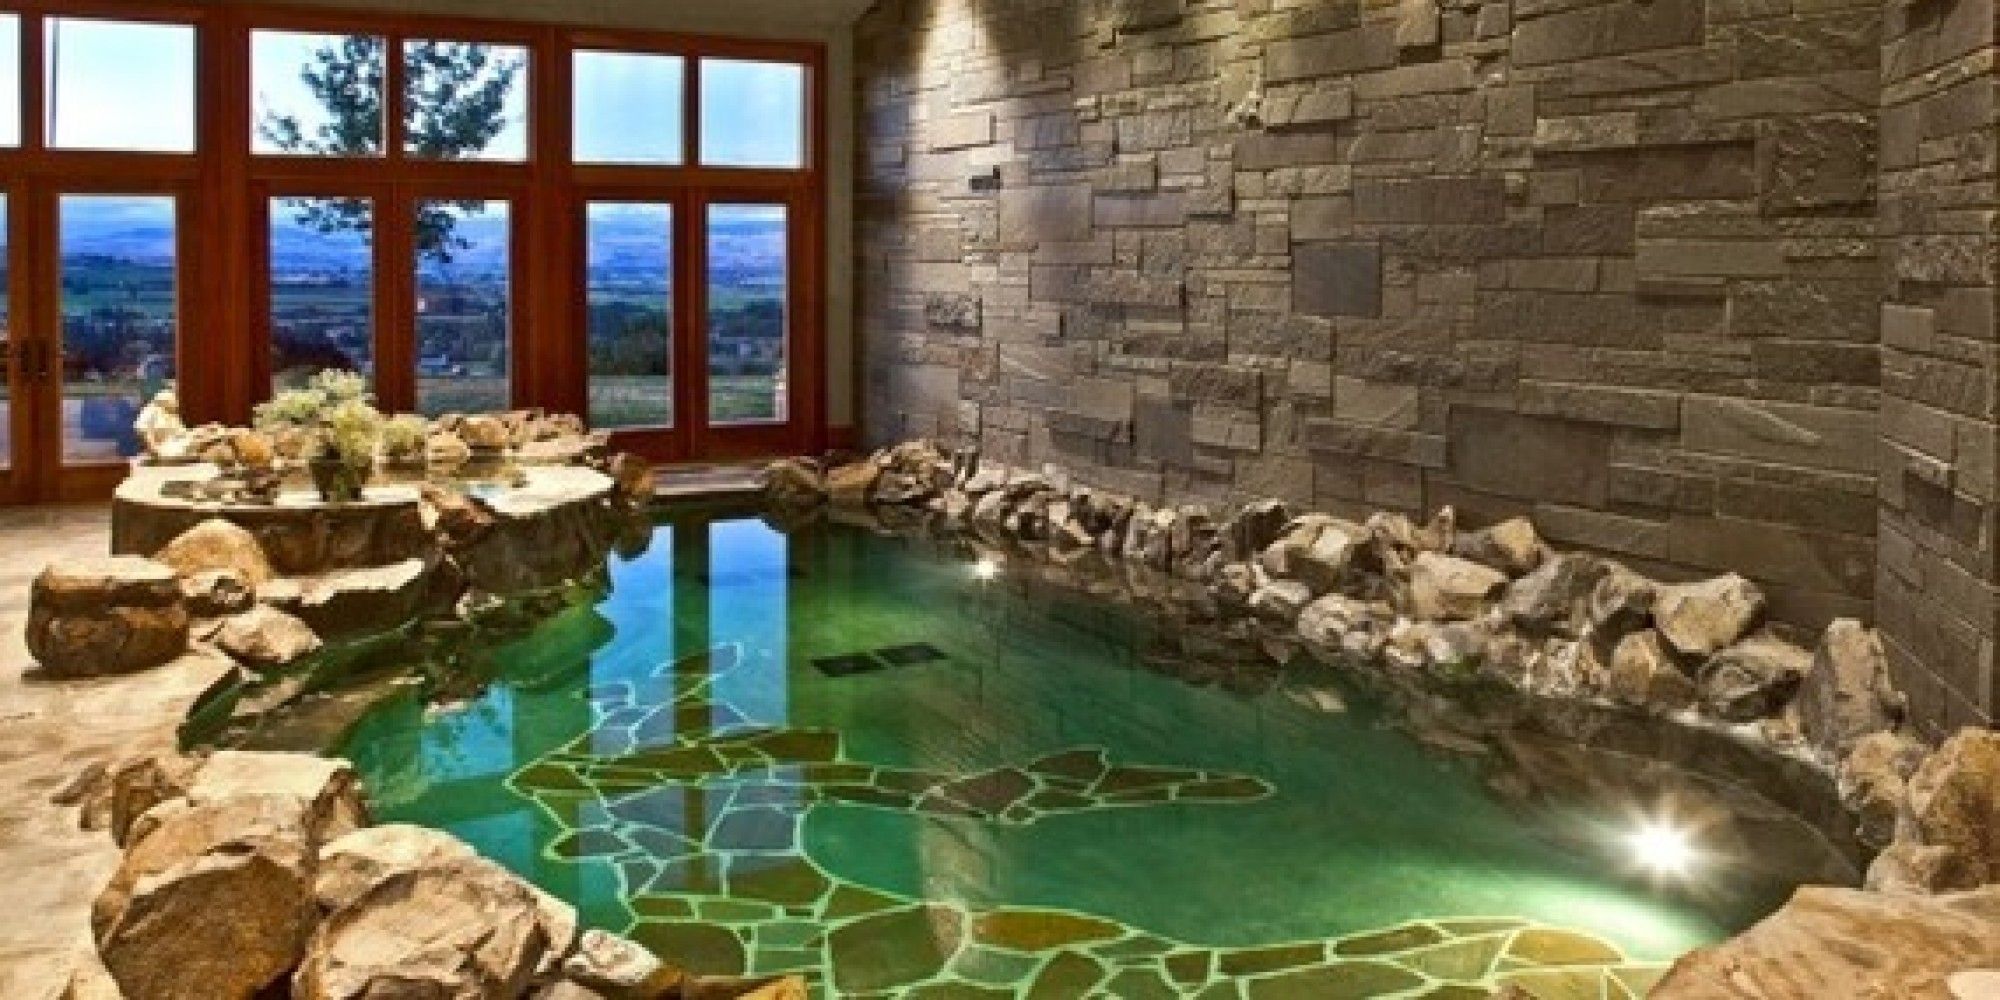 April pools 8 amazing indoor pools that could be yours - Indoor swimming pool with slides london ...